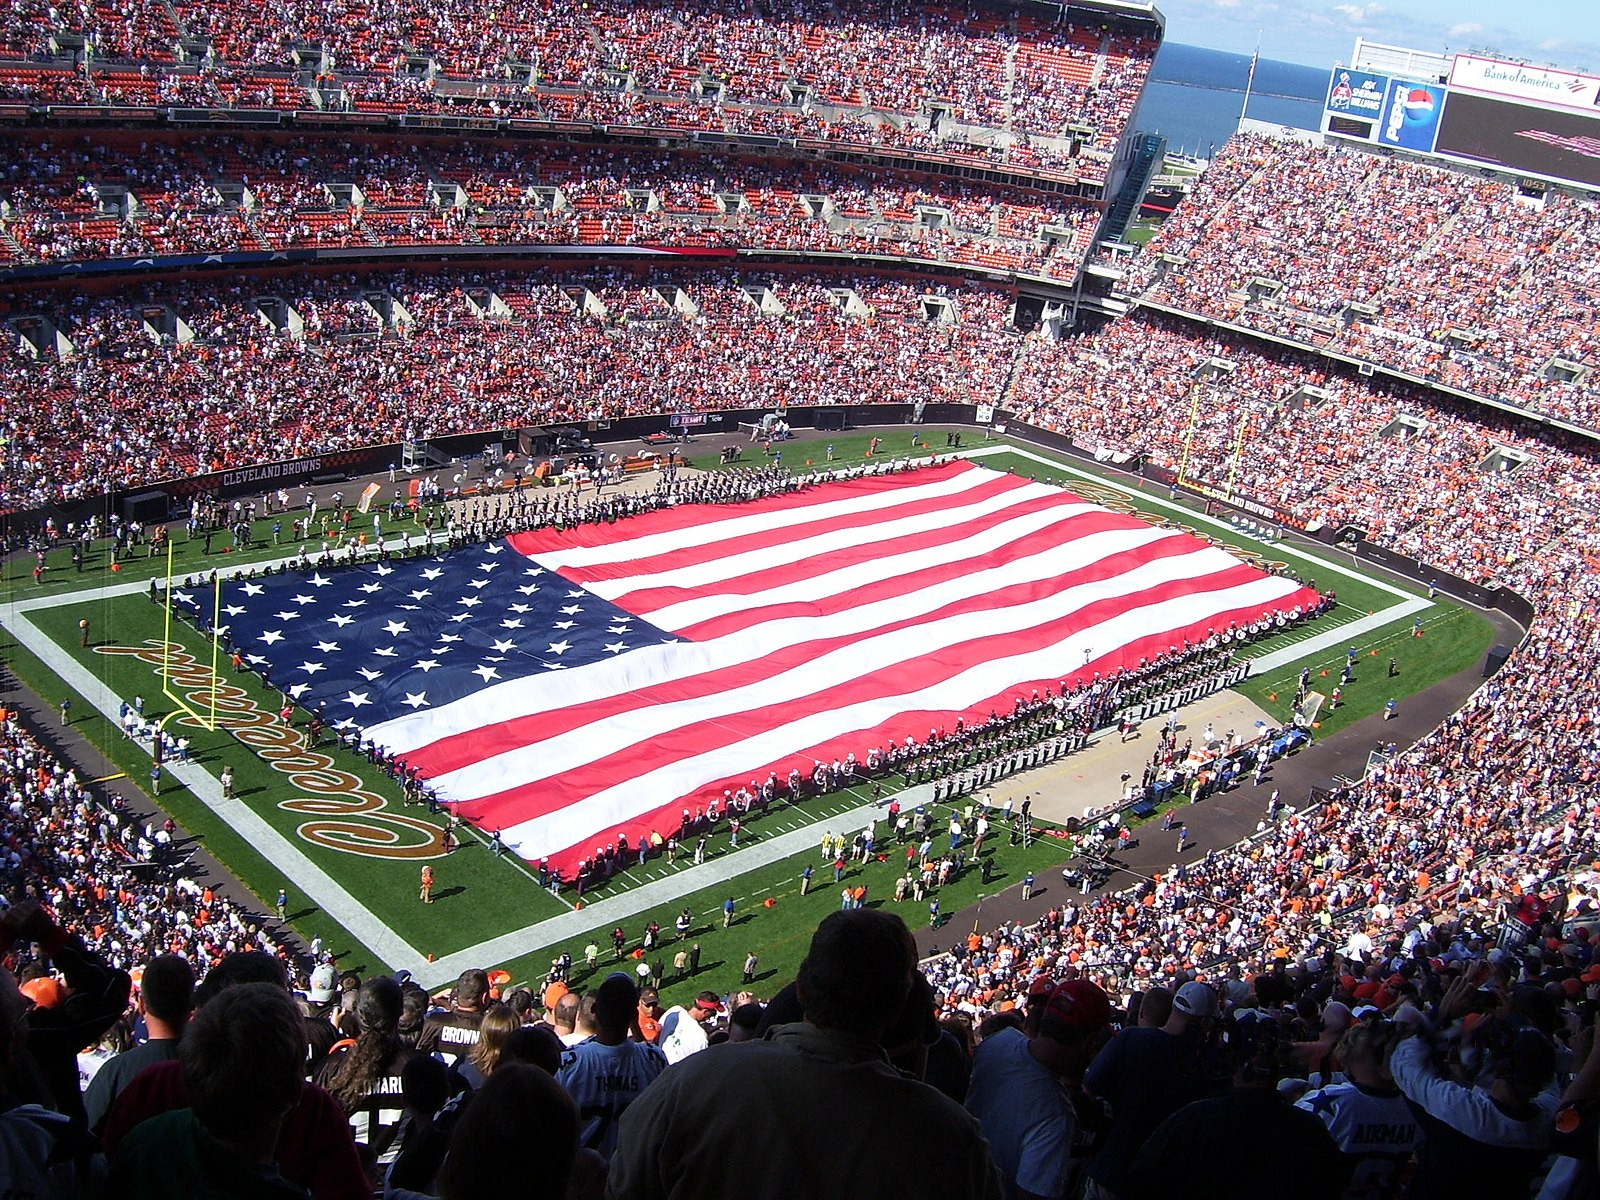 Cleveland Browns pre-game show, 2008